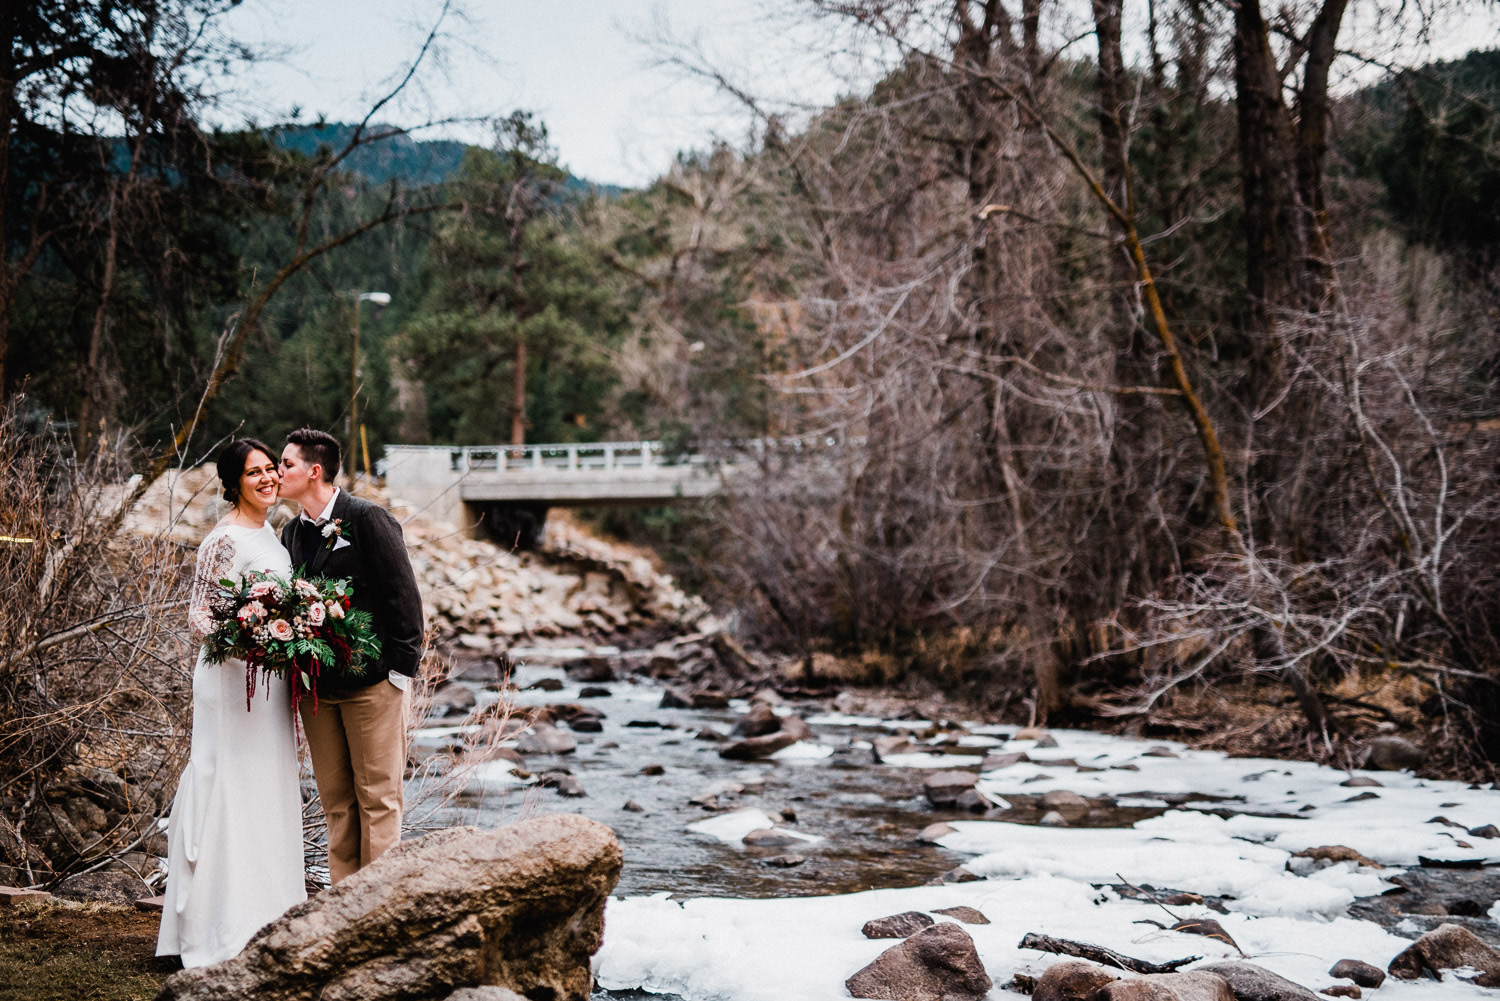 Winter wedding at Wedgewood Boulder Creek